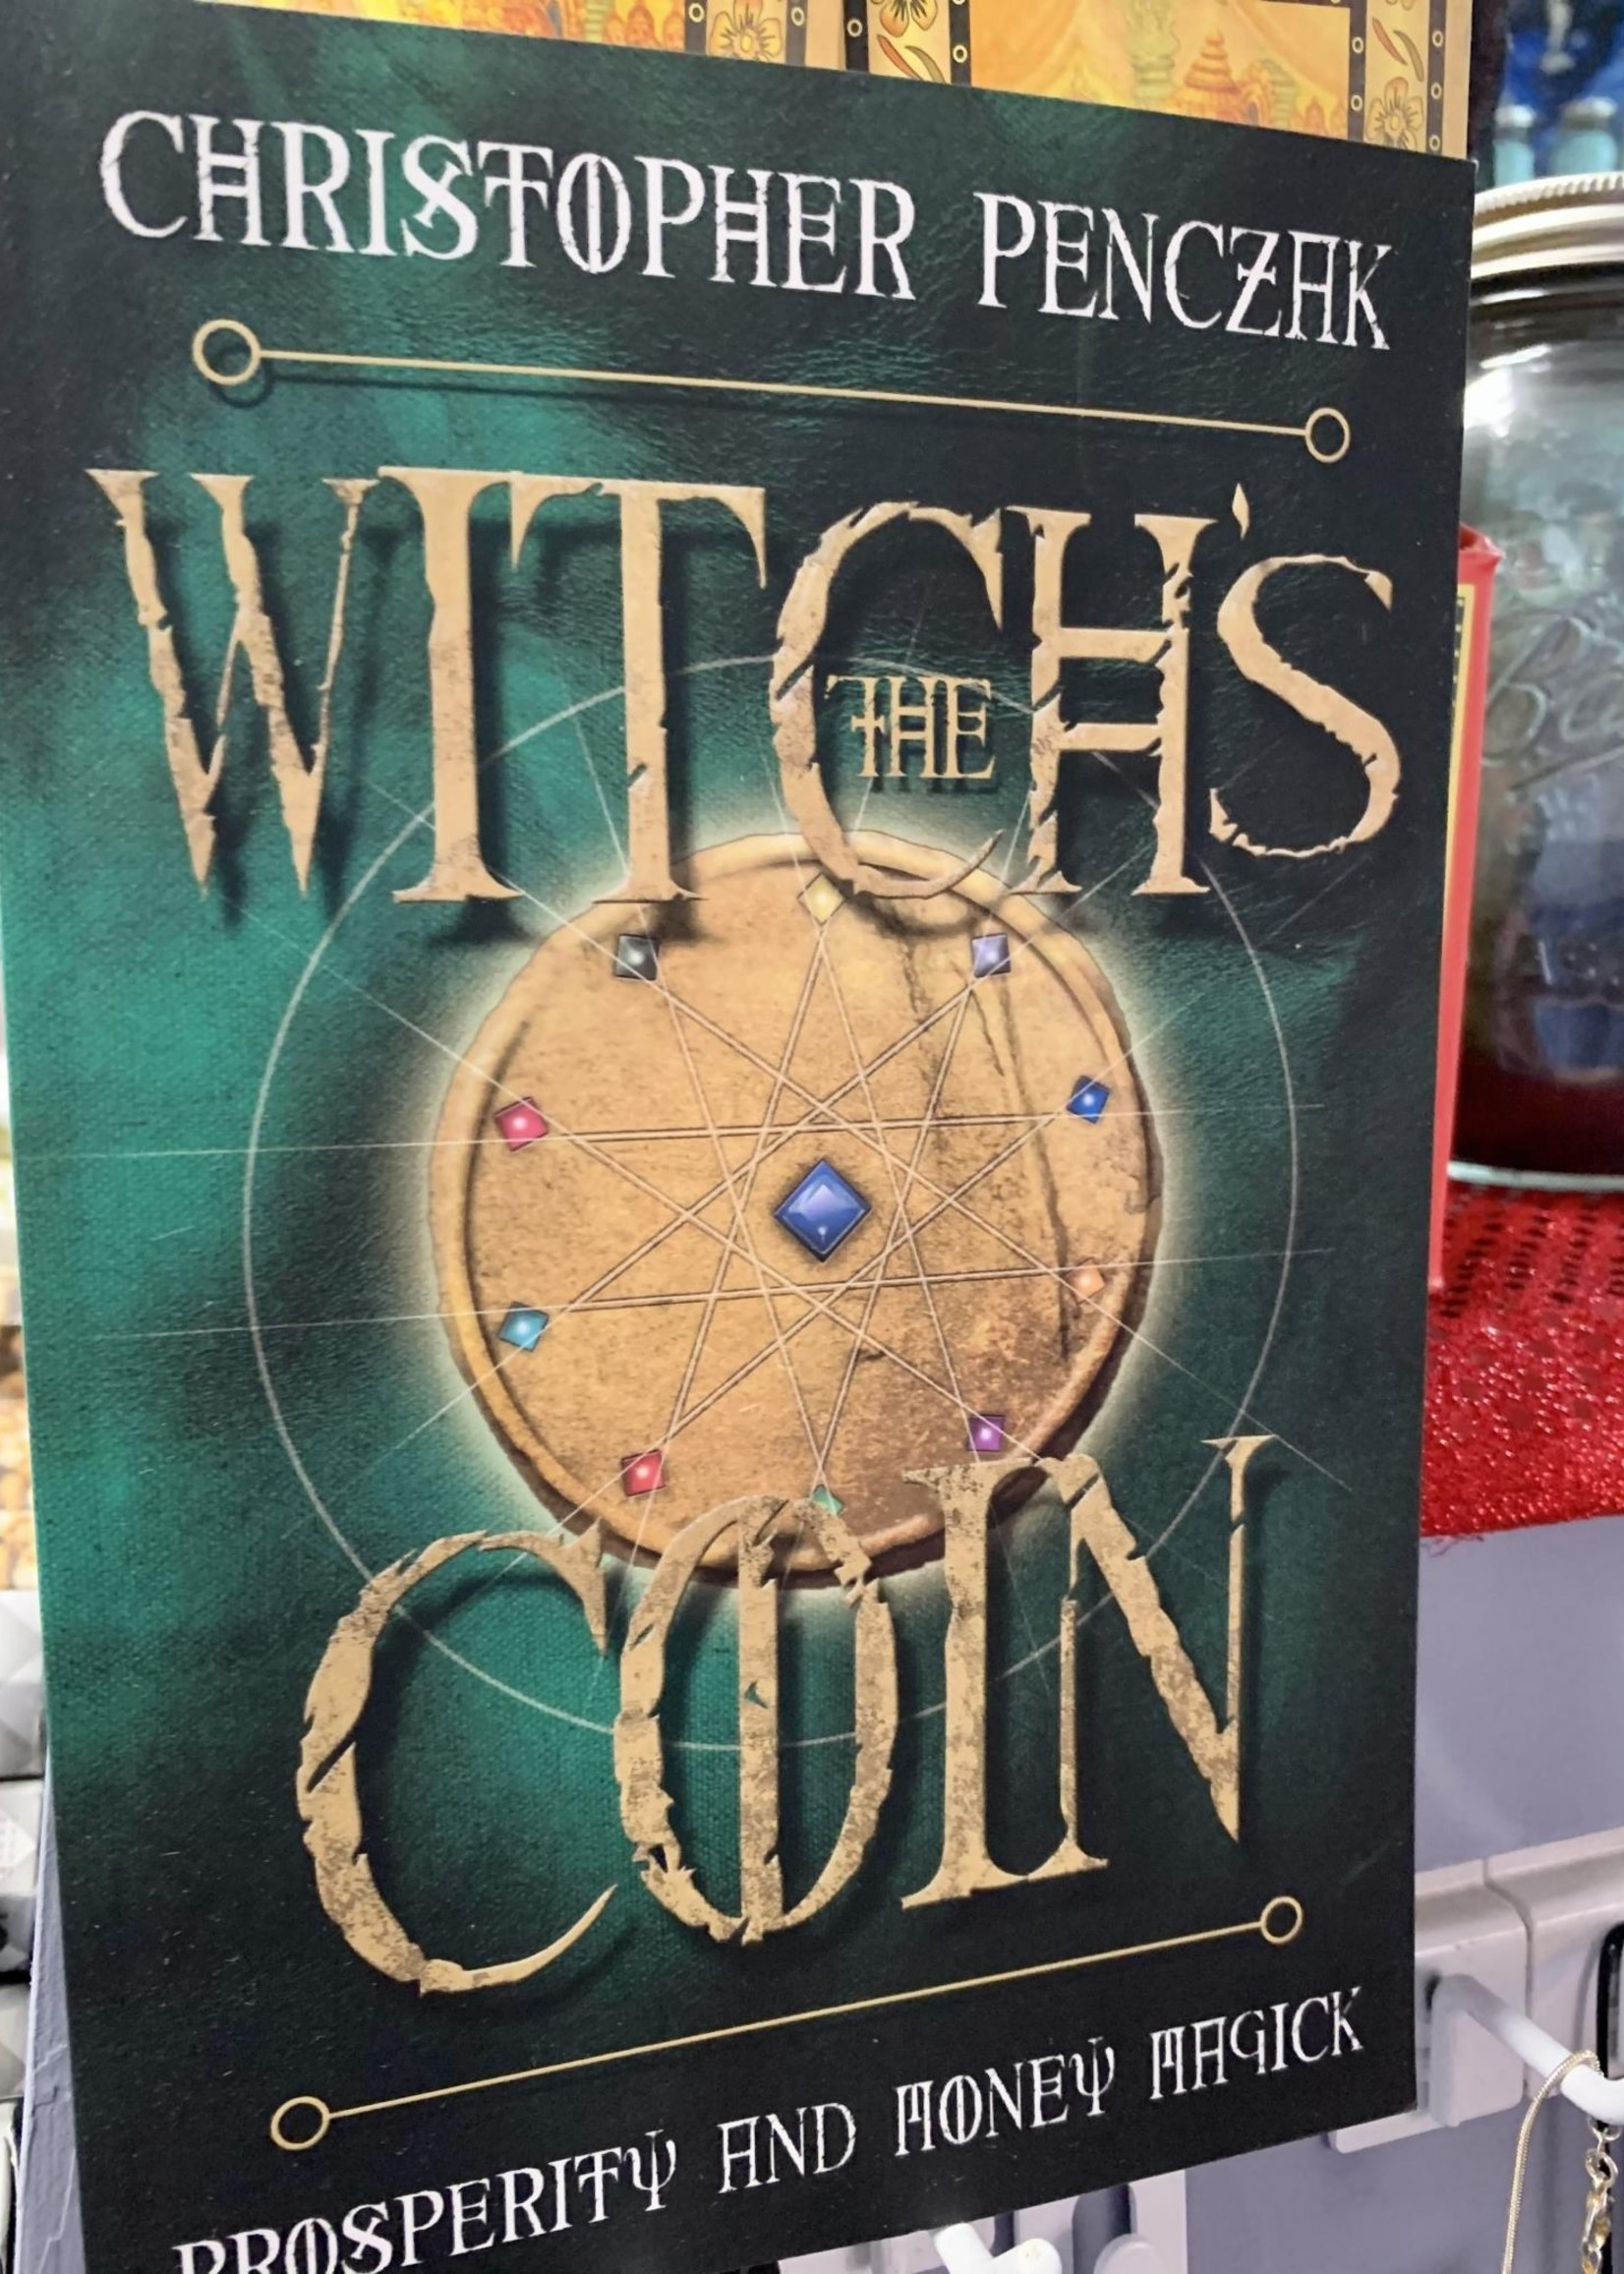 The Witch's Coin - BY CHRISTOPHER PENCZAK